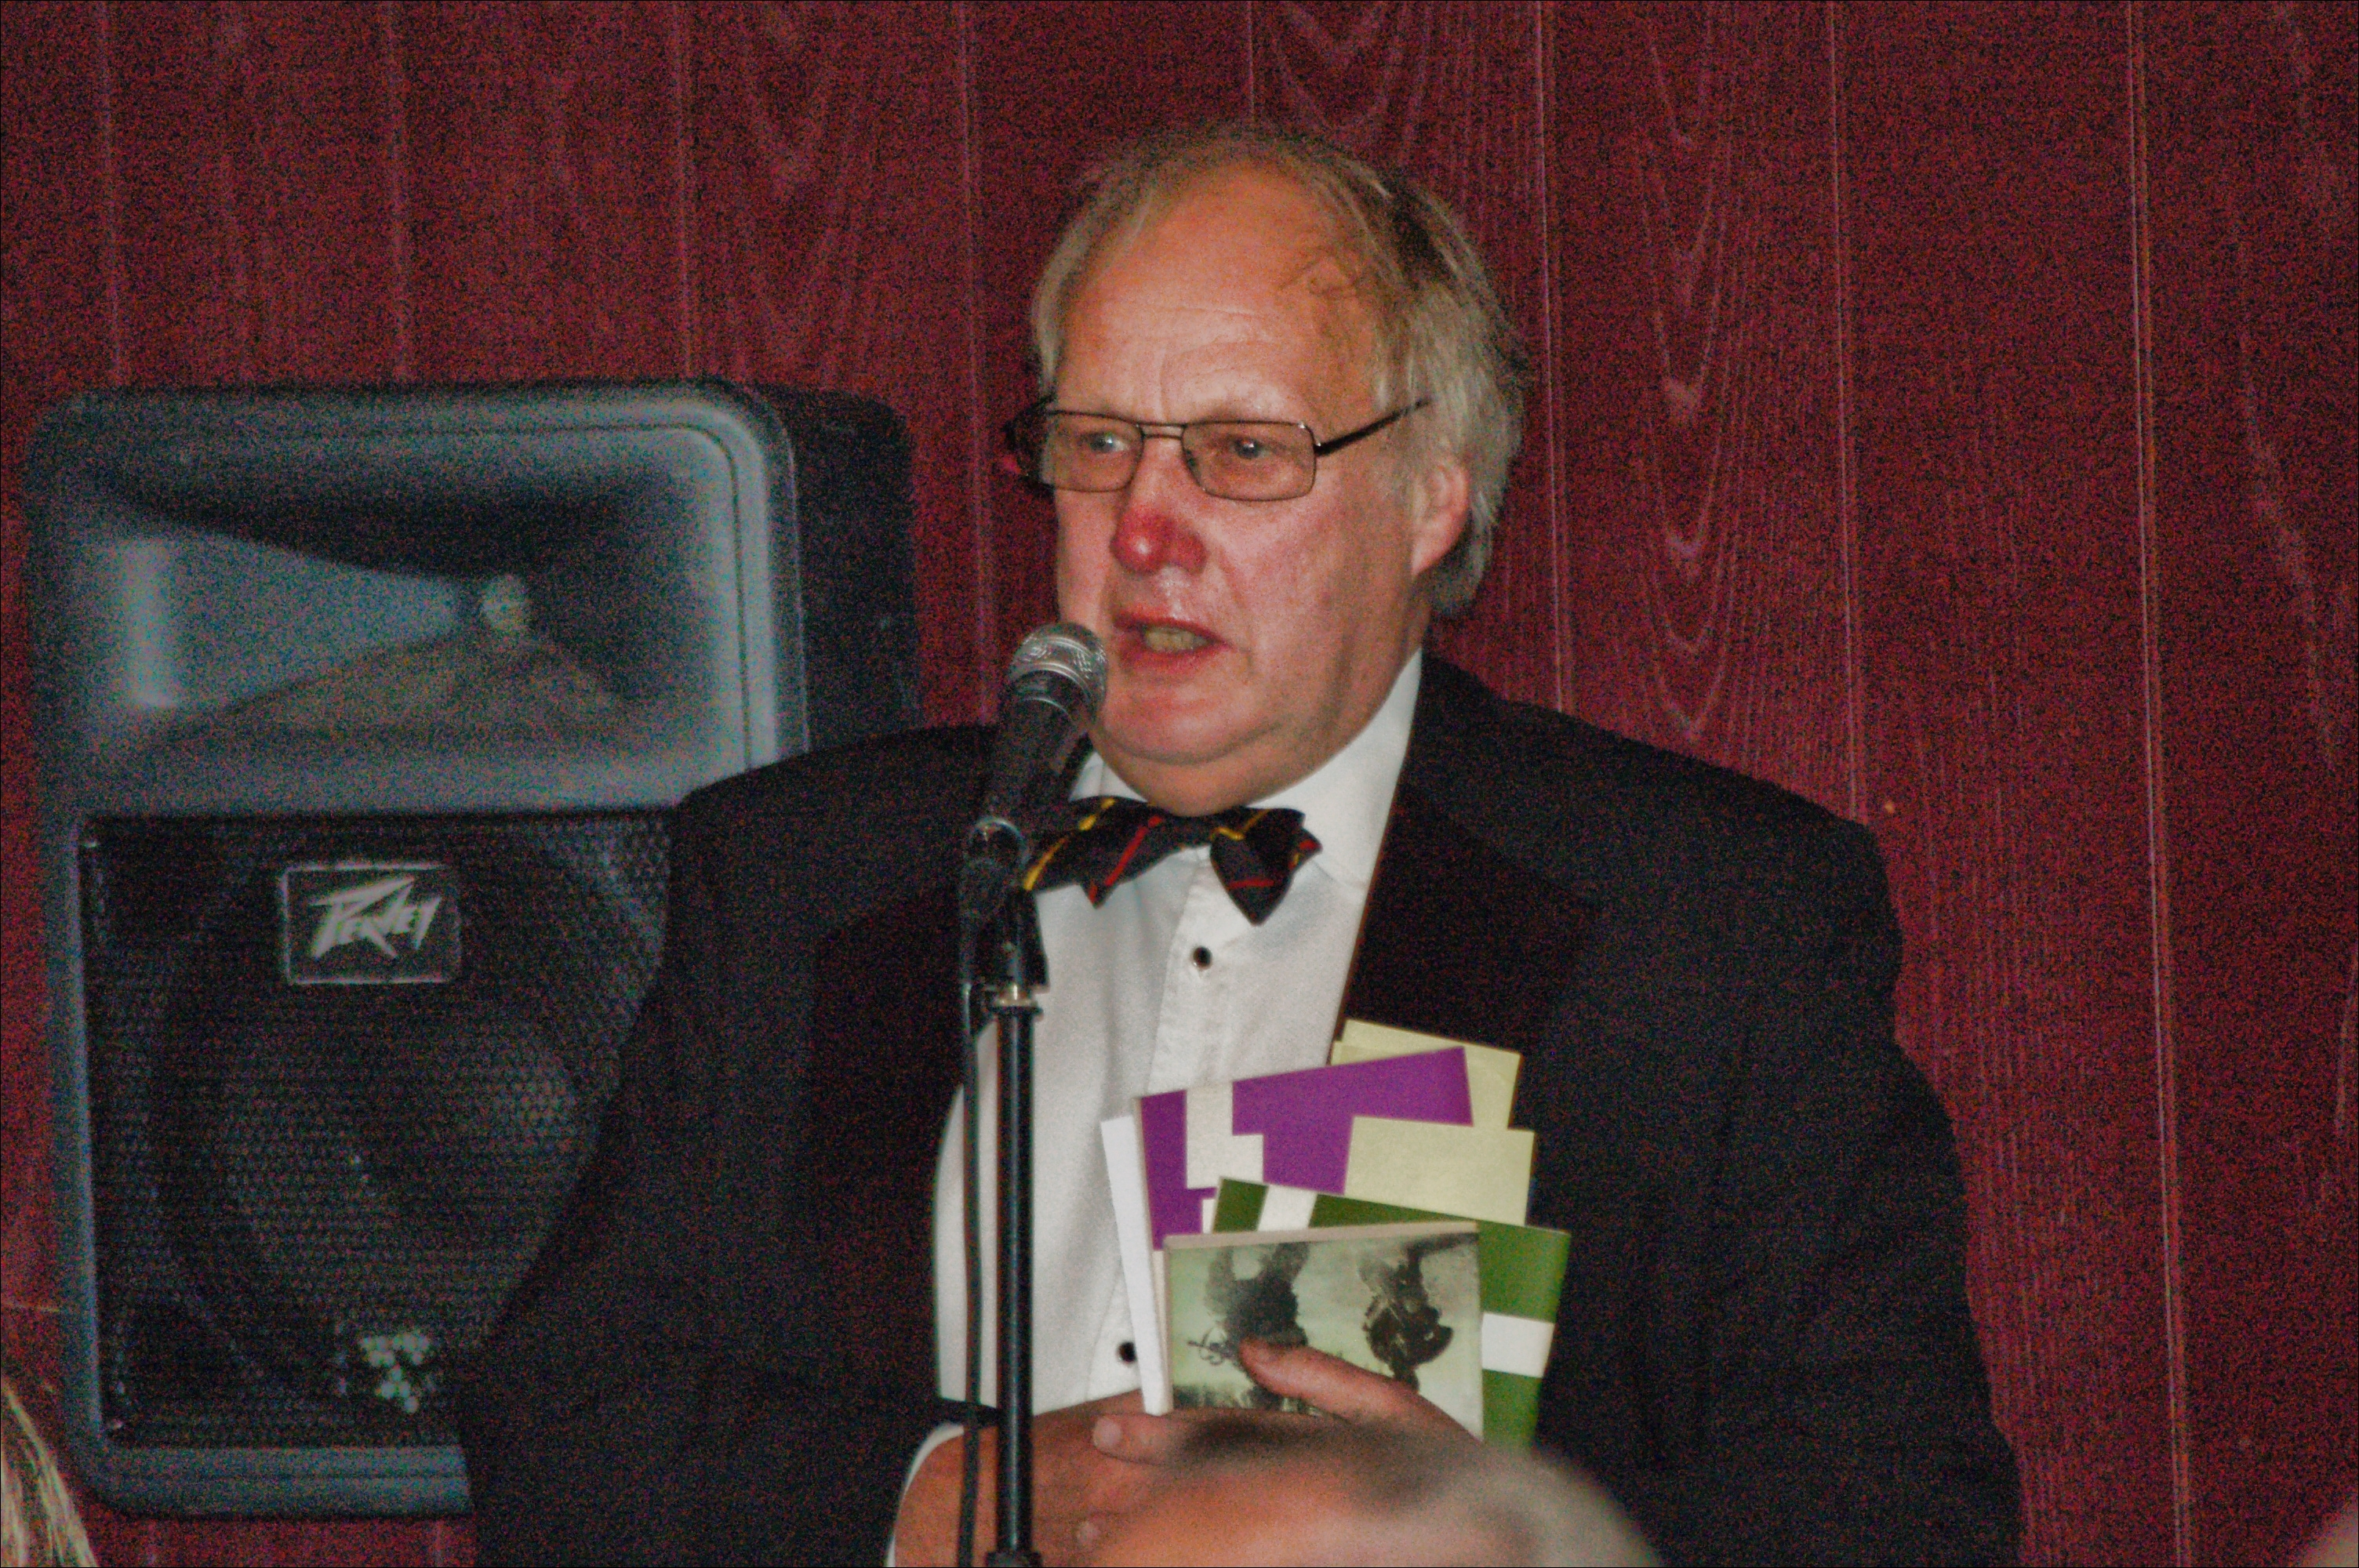 President of the OBA, Tony Whitestone (ex staff, 1971-2006) at the Annual Dinner 2009